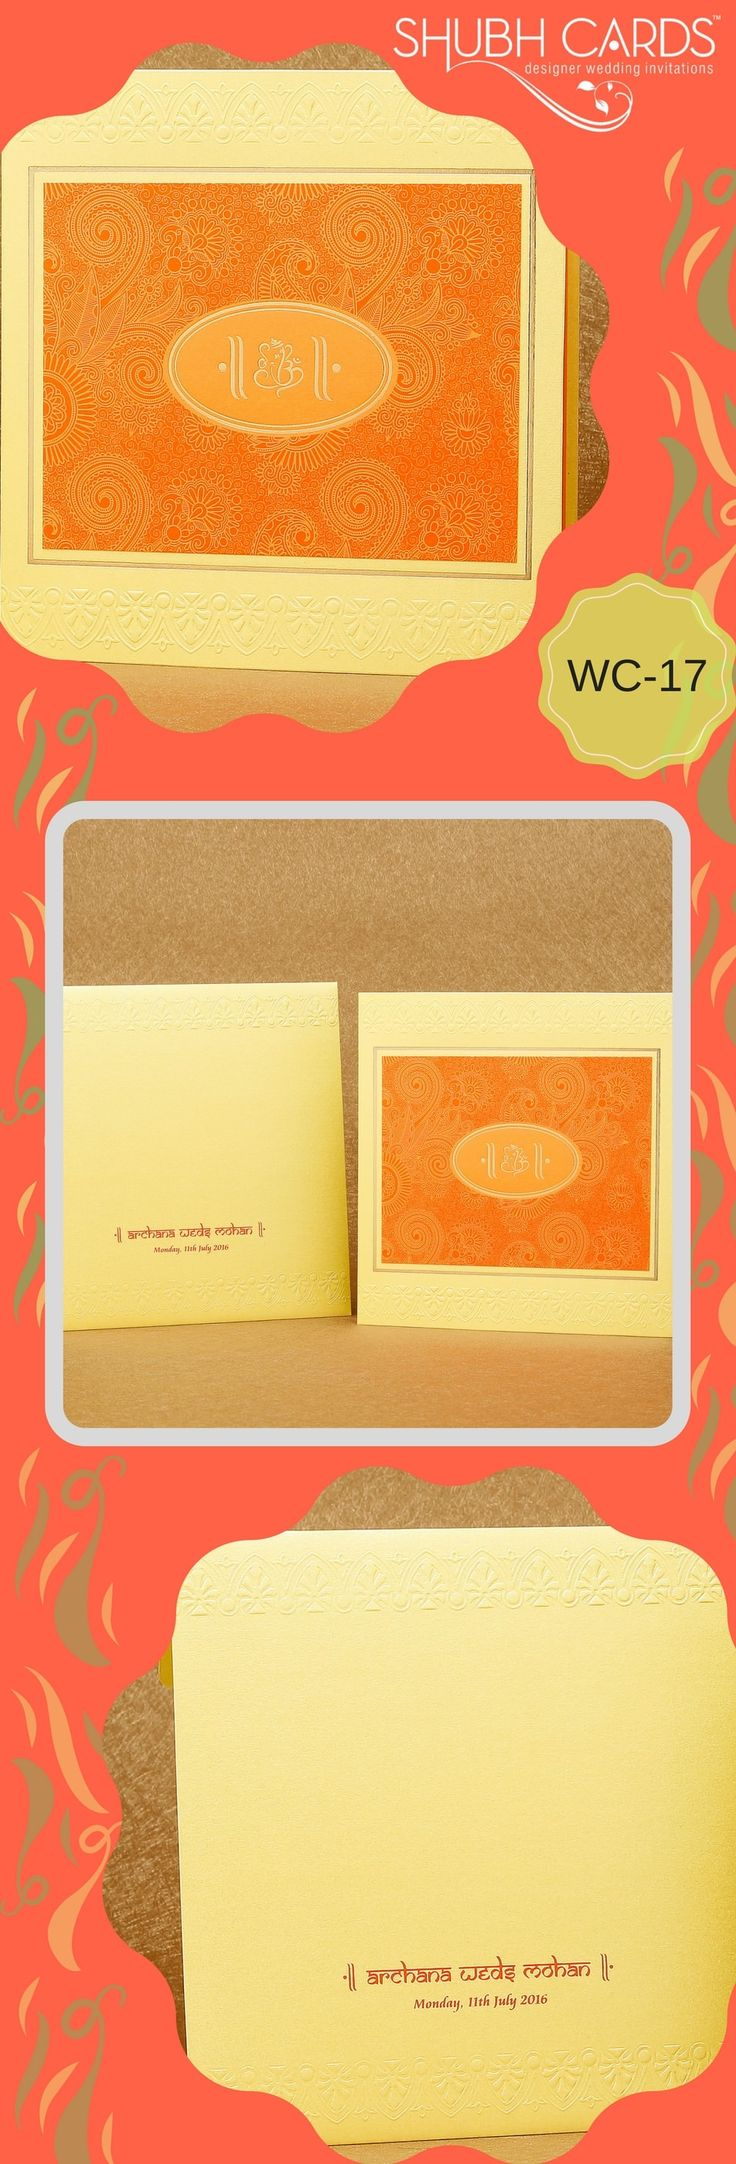 A charming #weddinginvite in yellow with an orange panel full of ornate floral designs. In the centre of the orange panel is an oval design with a Ganesha in Gold.  The cover and the inserts have borders of floral pattern in embossed print. The intricately laid out designs in this #ClassicCard is indeed breathtaking.  #ClassicWeddingCard #Classic #DesignerInvite #DesignerInvitation #ShubhCards